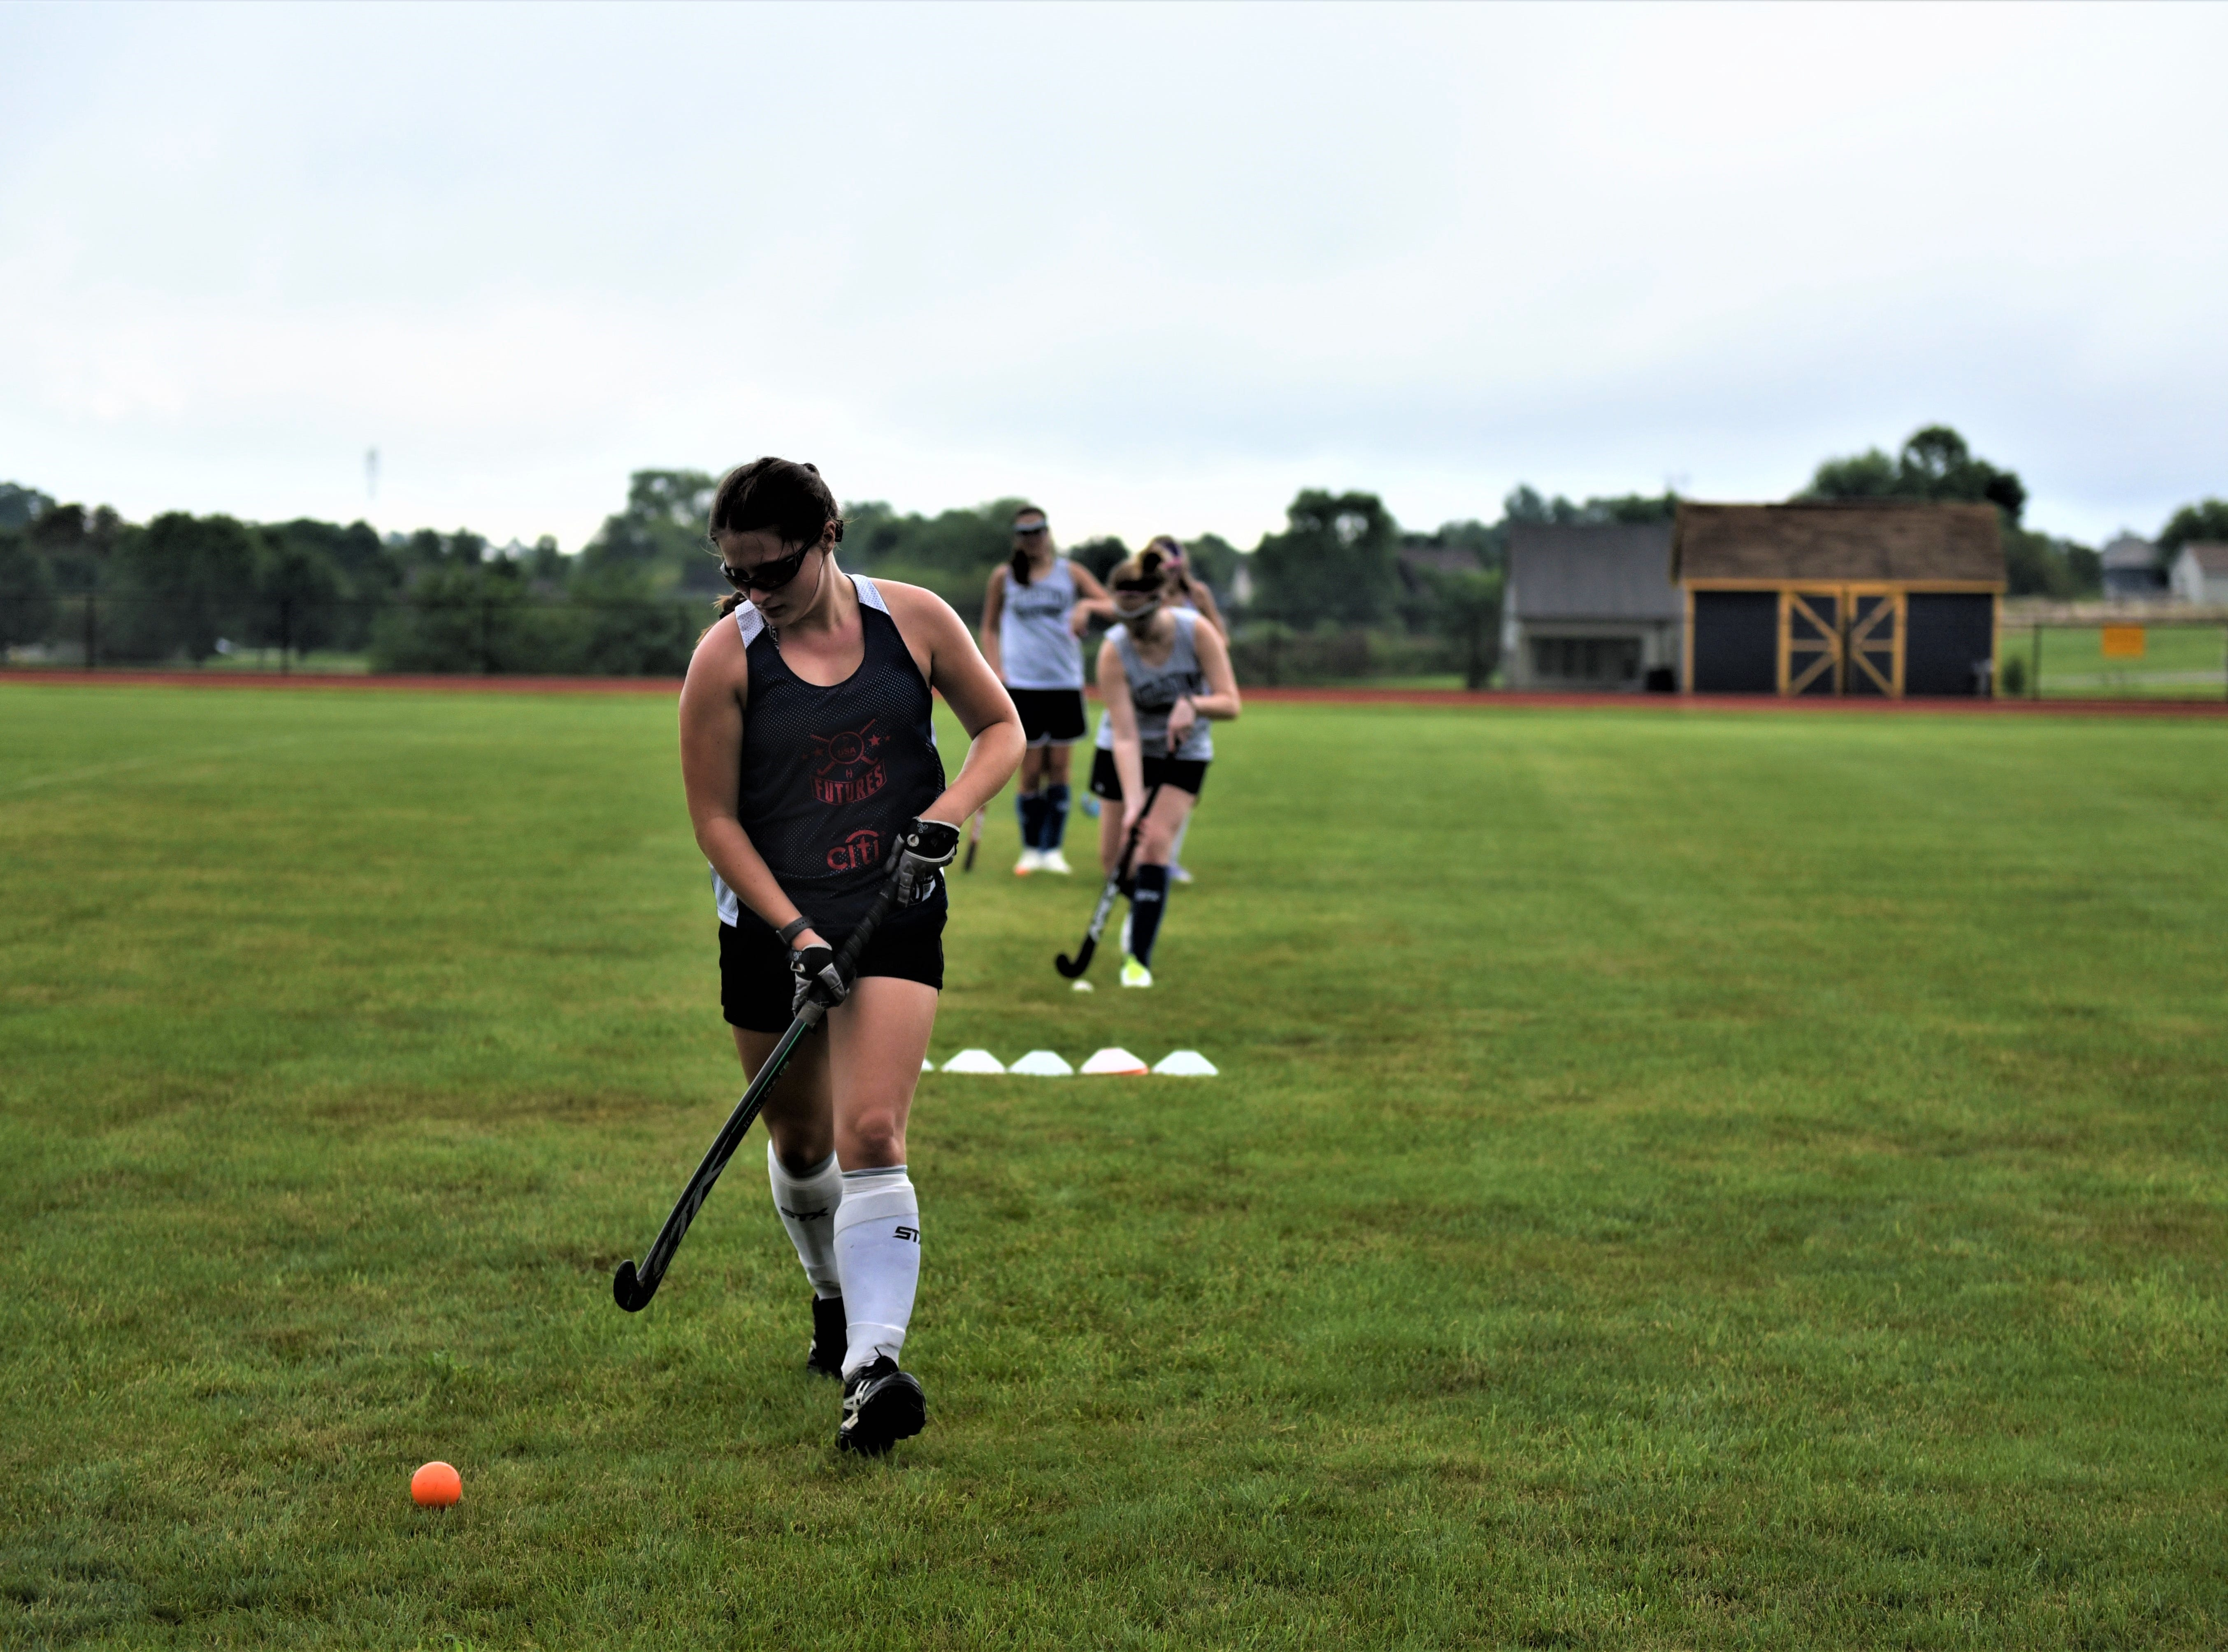 Regan Schroeder, a senior forward for Littlestown field hockey, practices on the first day of fall sports on Monday, Aug. 13, 2018.